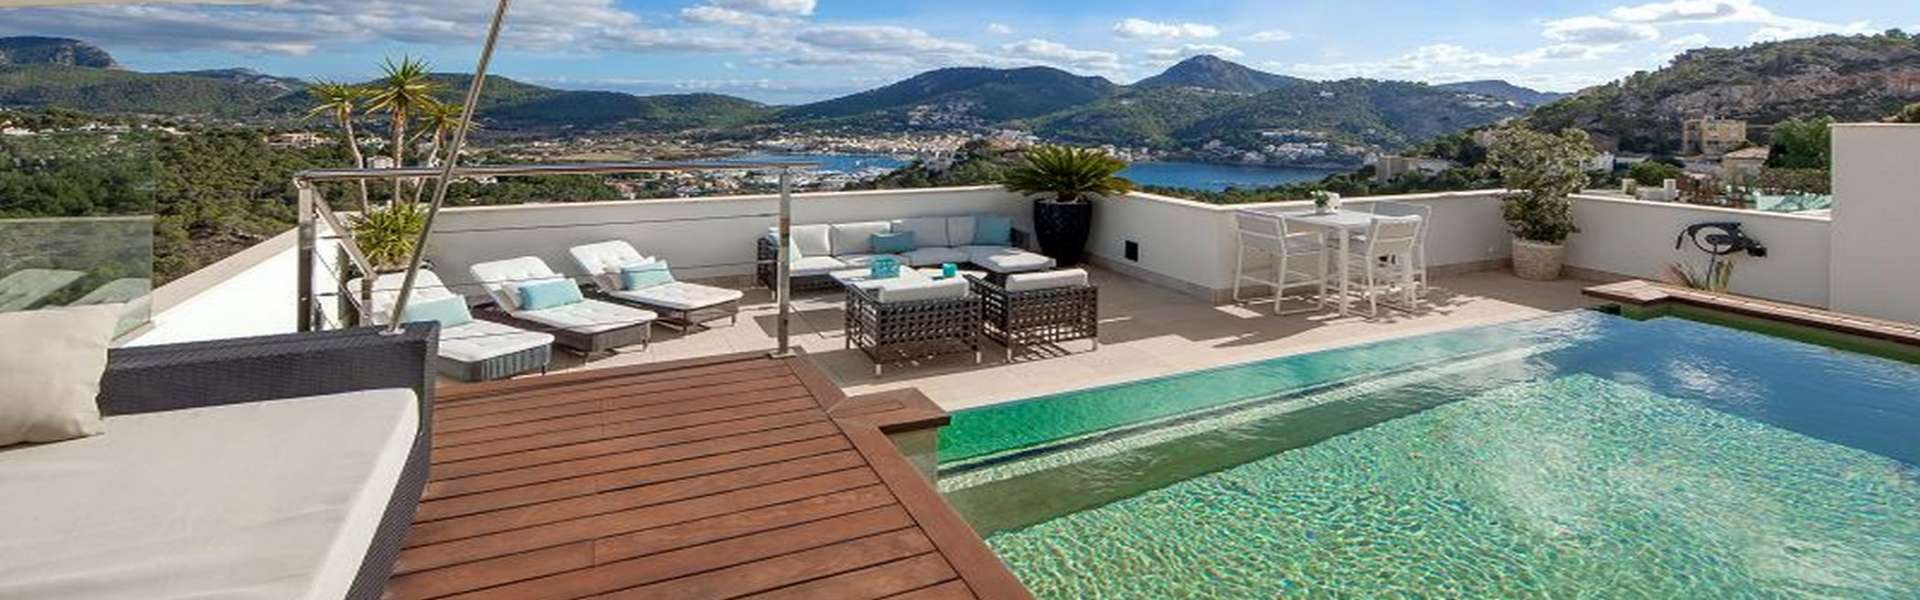 Port d'Andratx - Modern and exclusive penthouse for sale